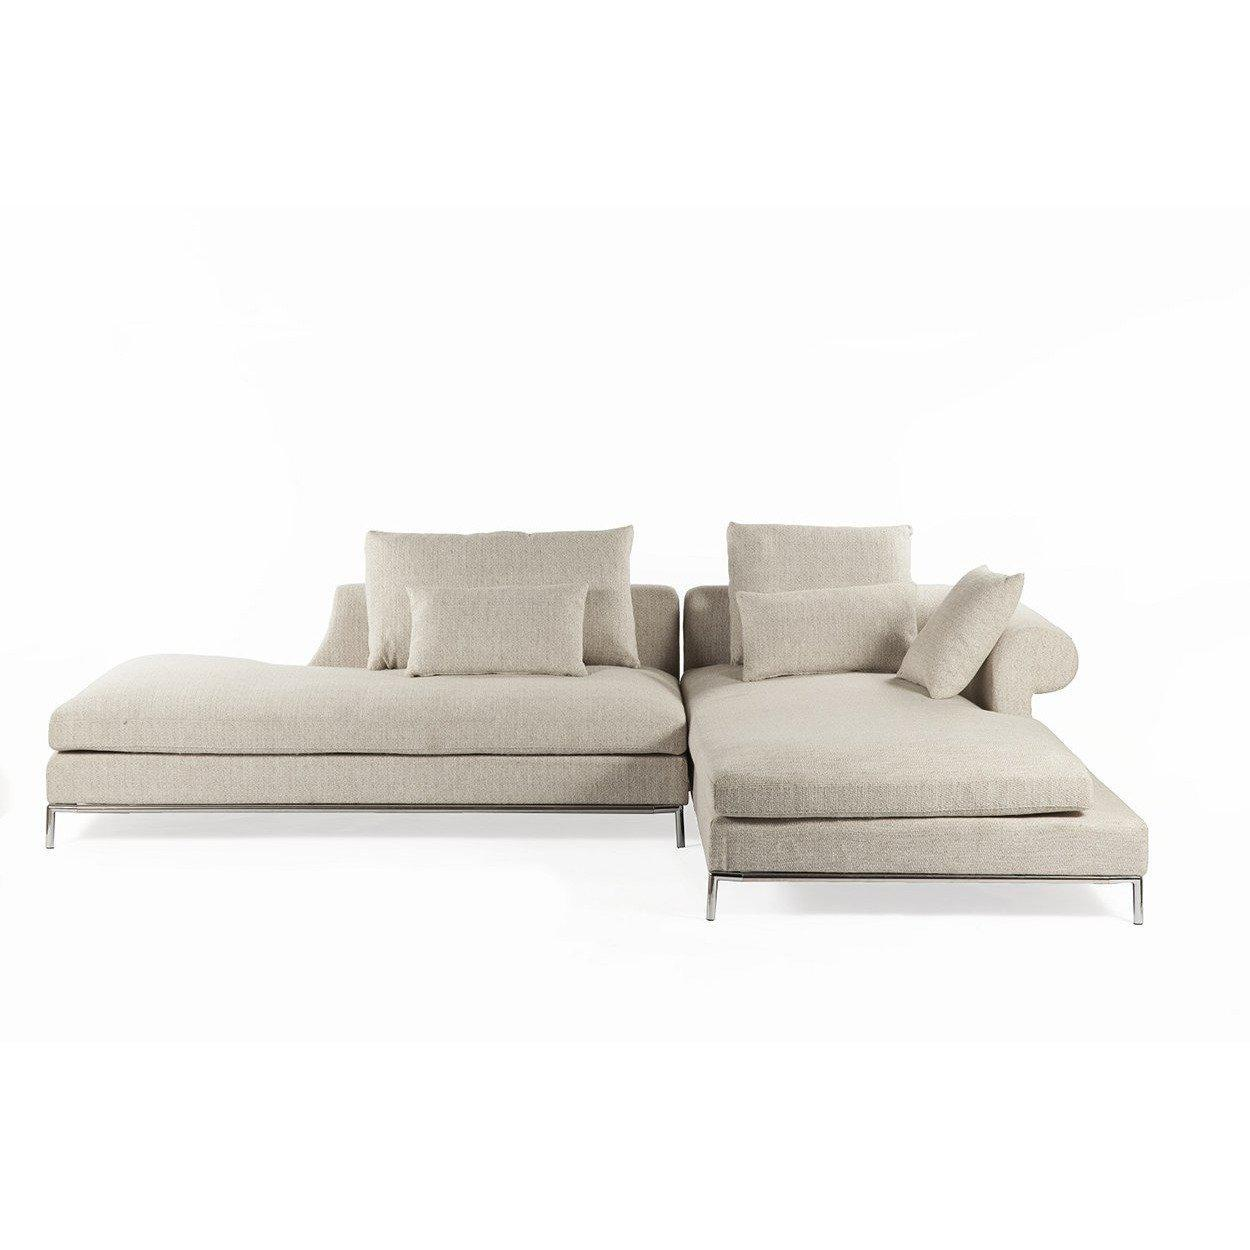 [FQS009BEIGE] The Scandicci Sectional sale